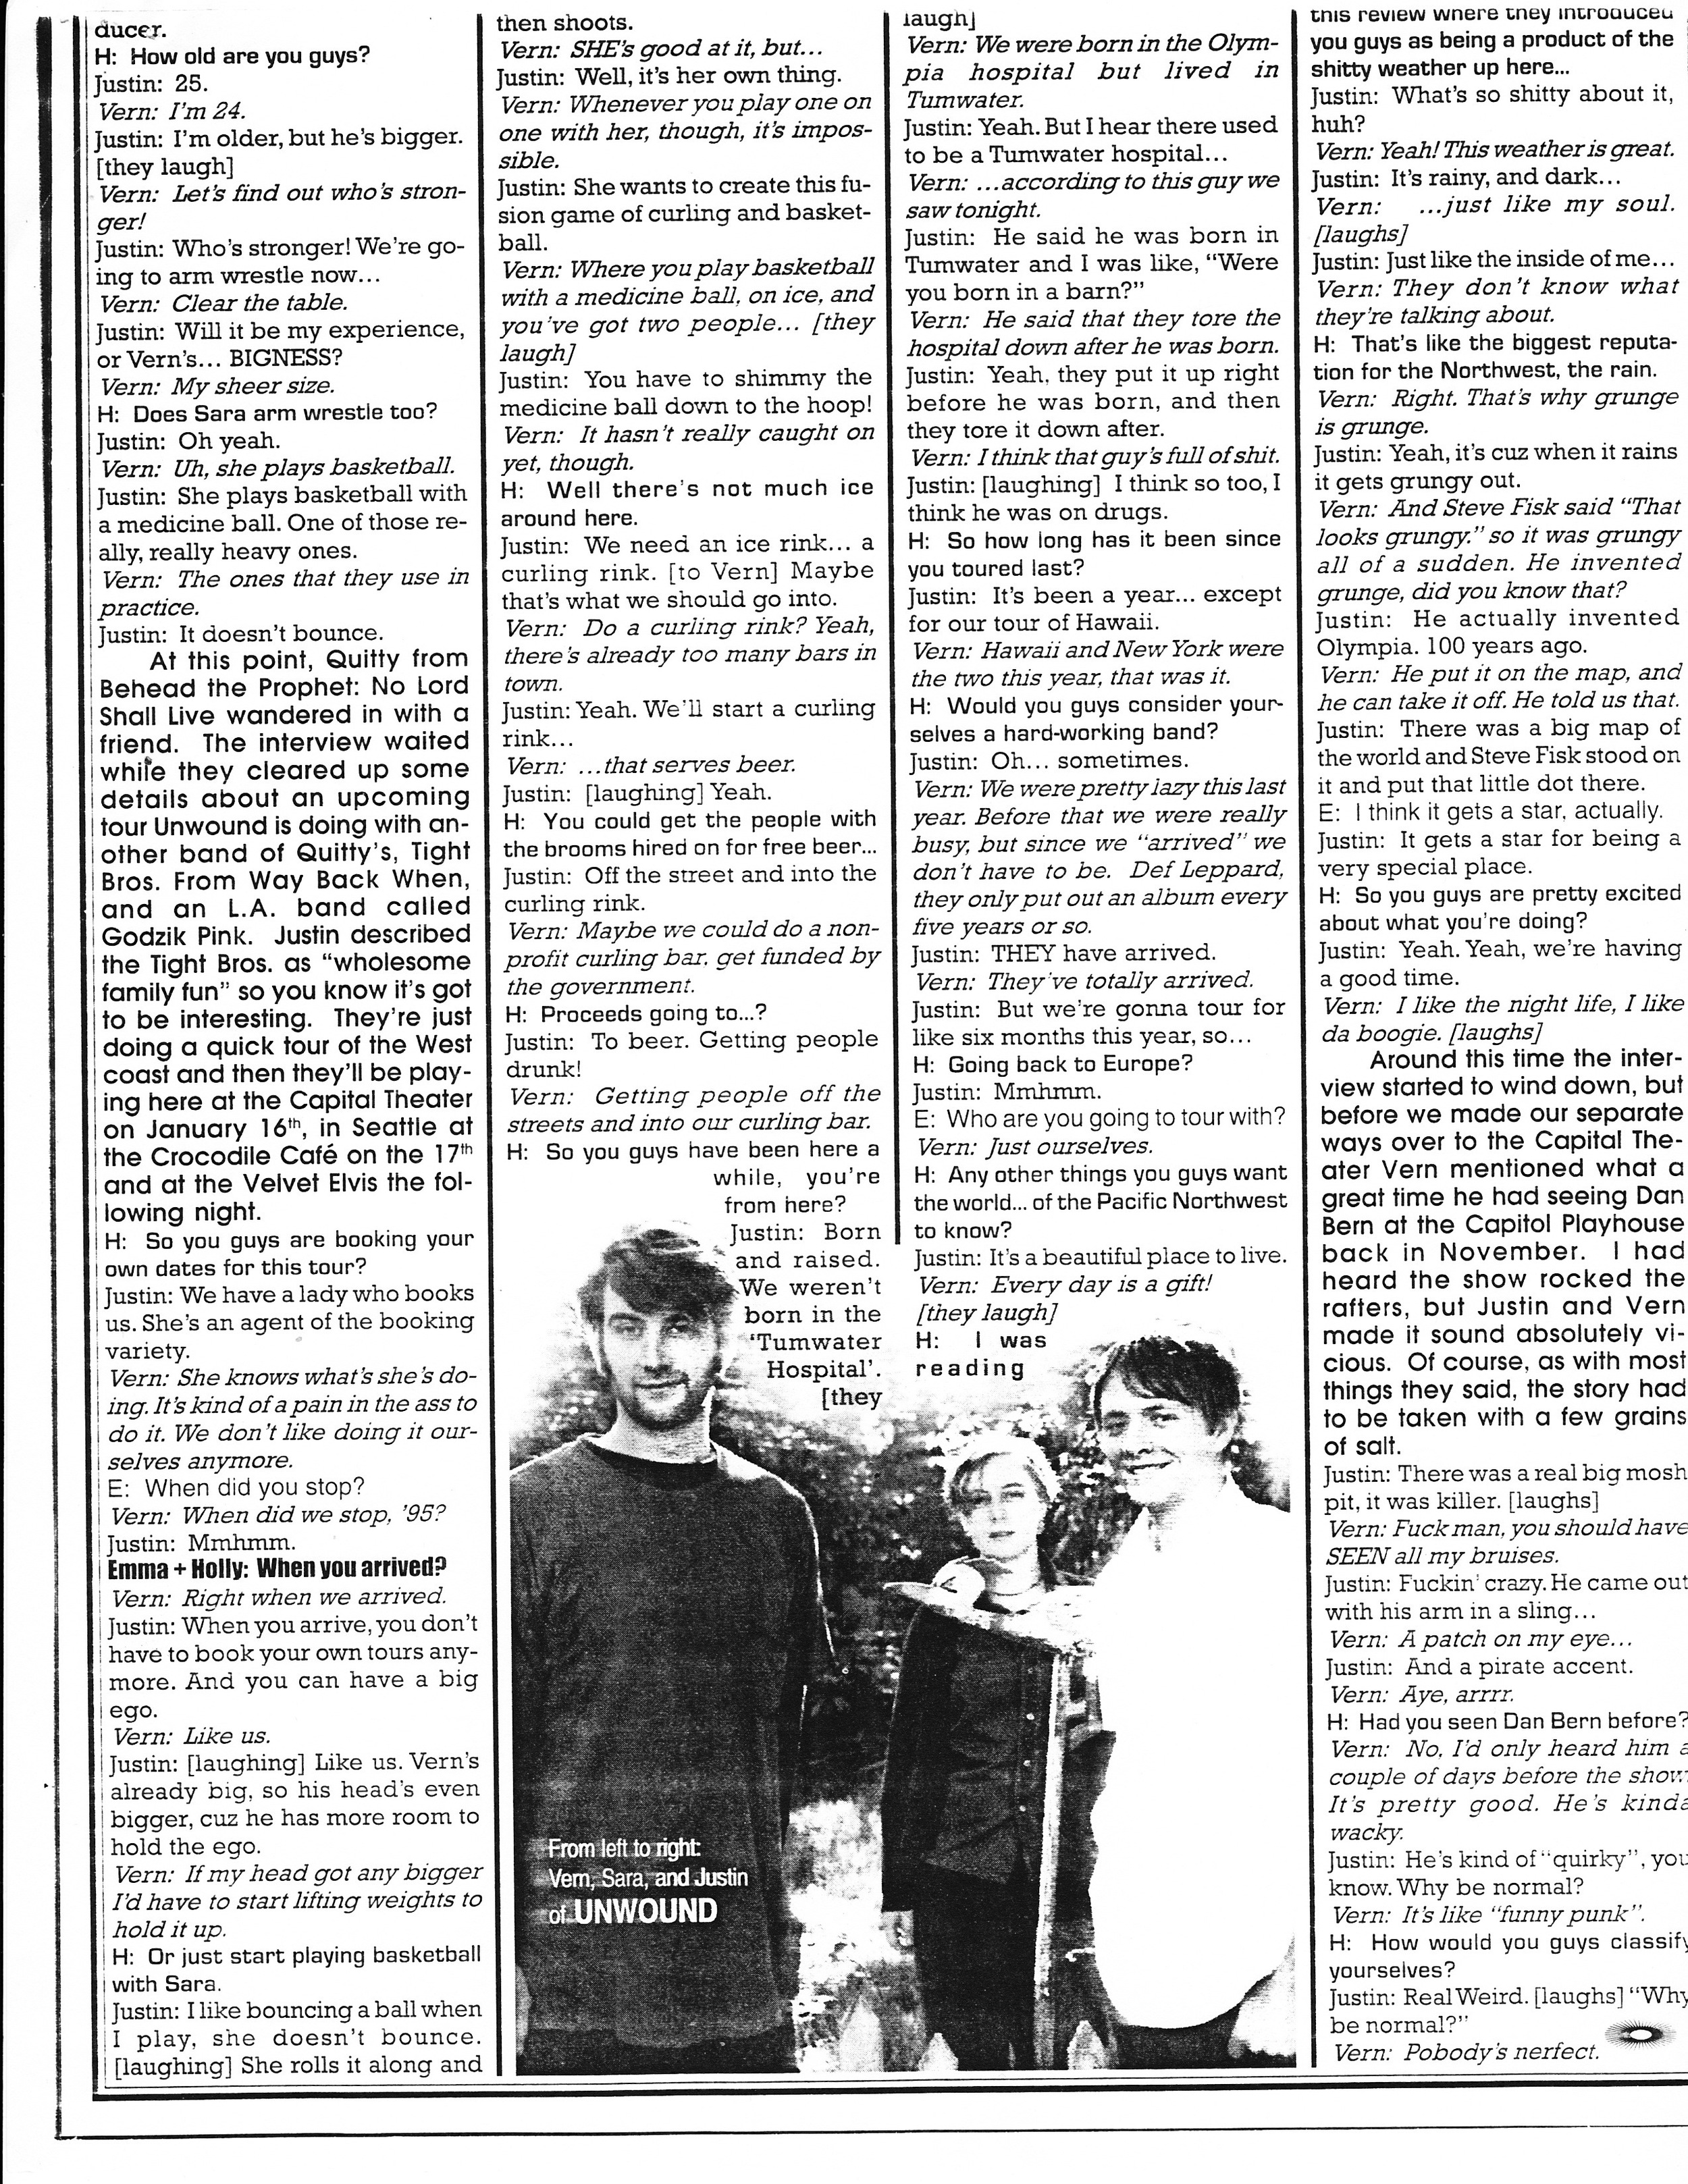 Axis Music & Media Dispatch Jan 1998 Interview with Justin and Vern. p.3